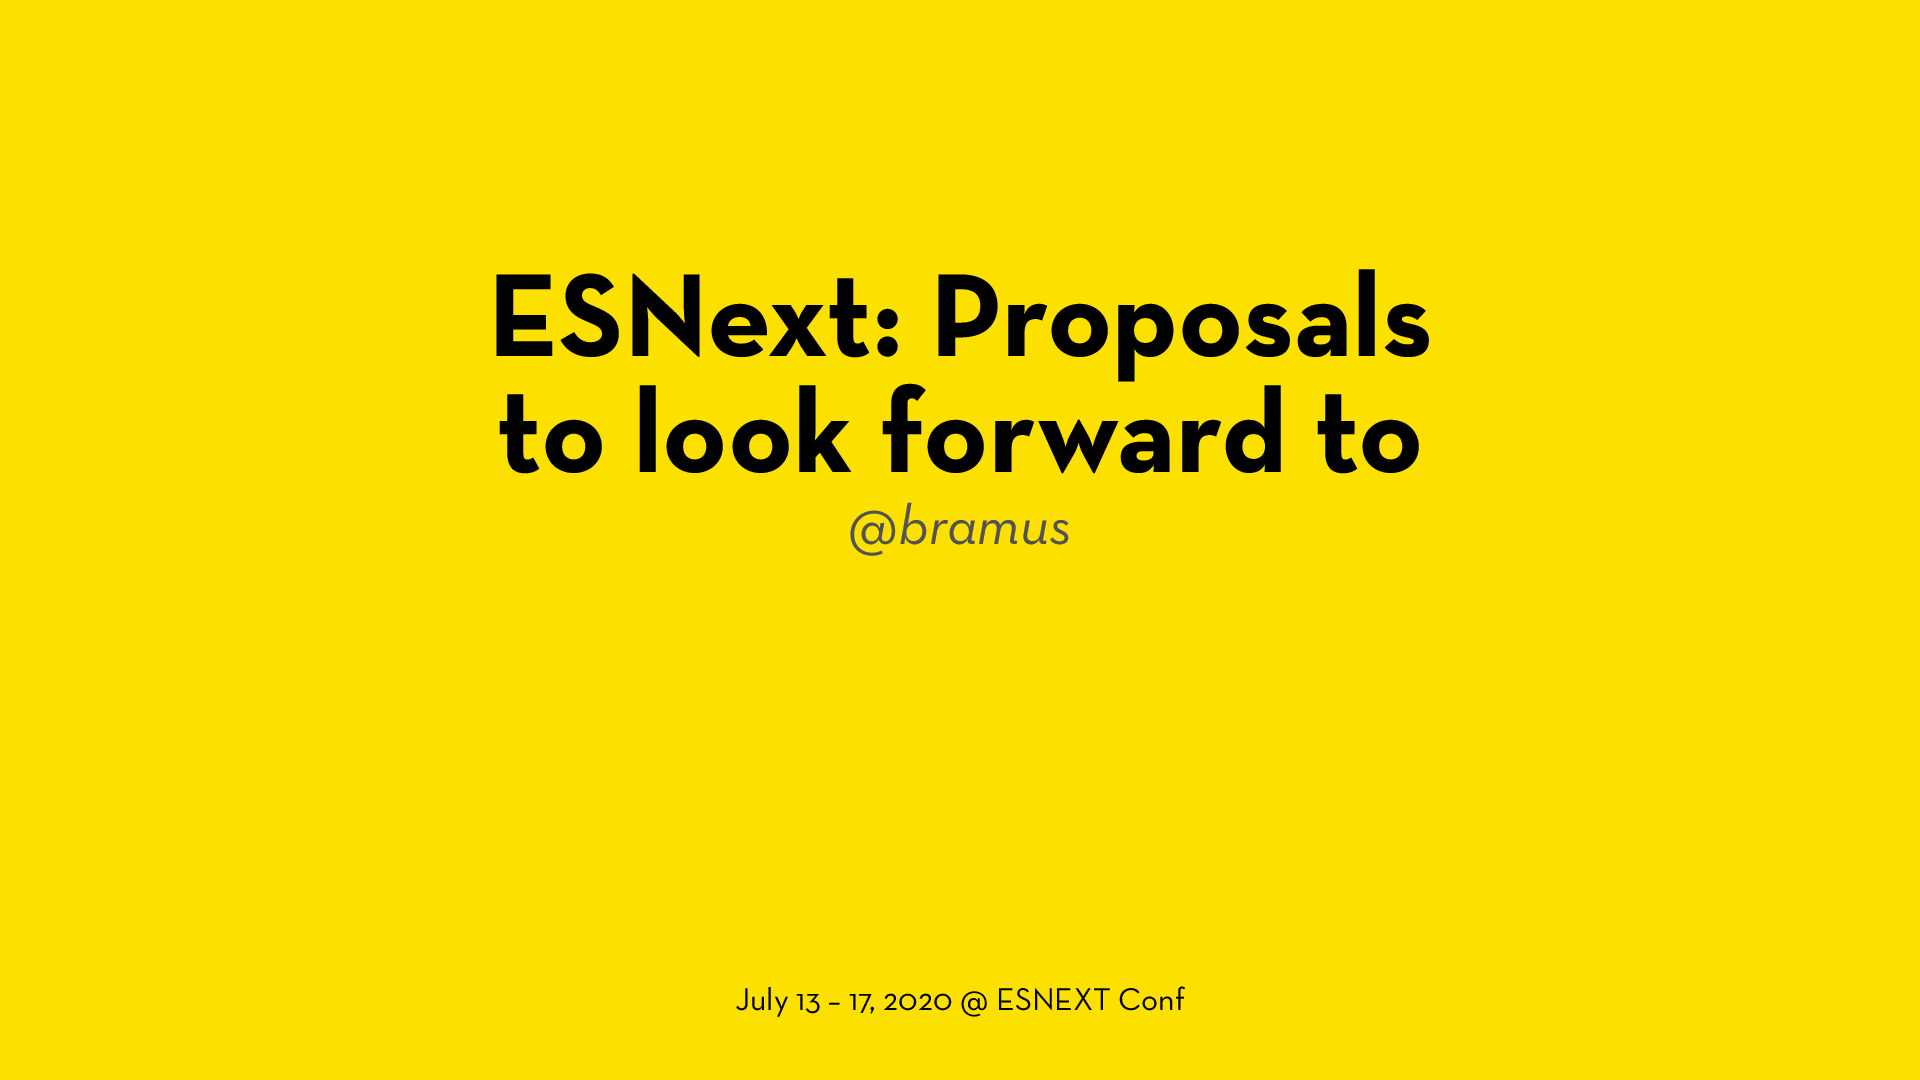 ESNext: Proposals to look forward to (2020.07.13 @ ESNEXT Conf)